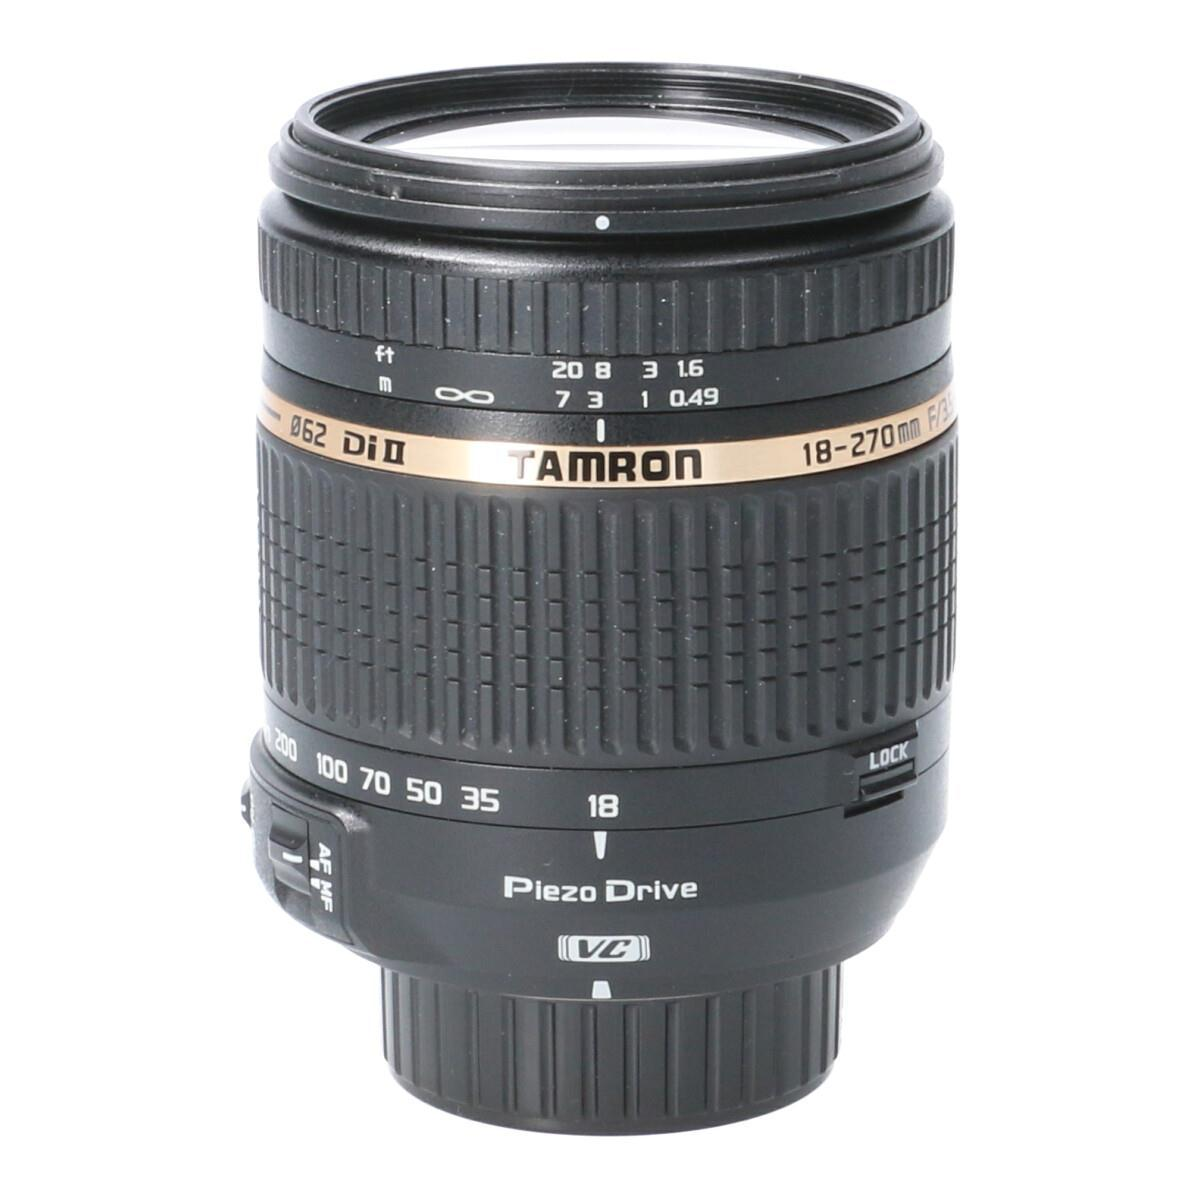 TAMRON ニコン(B008)18-270mm F3.5-6.3VC【中古】